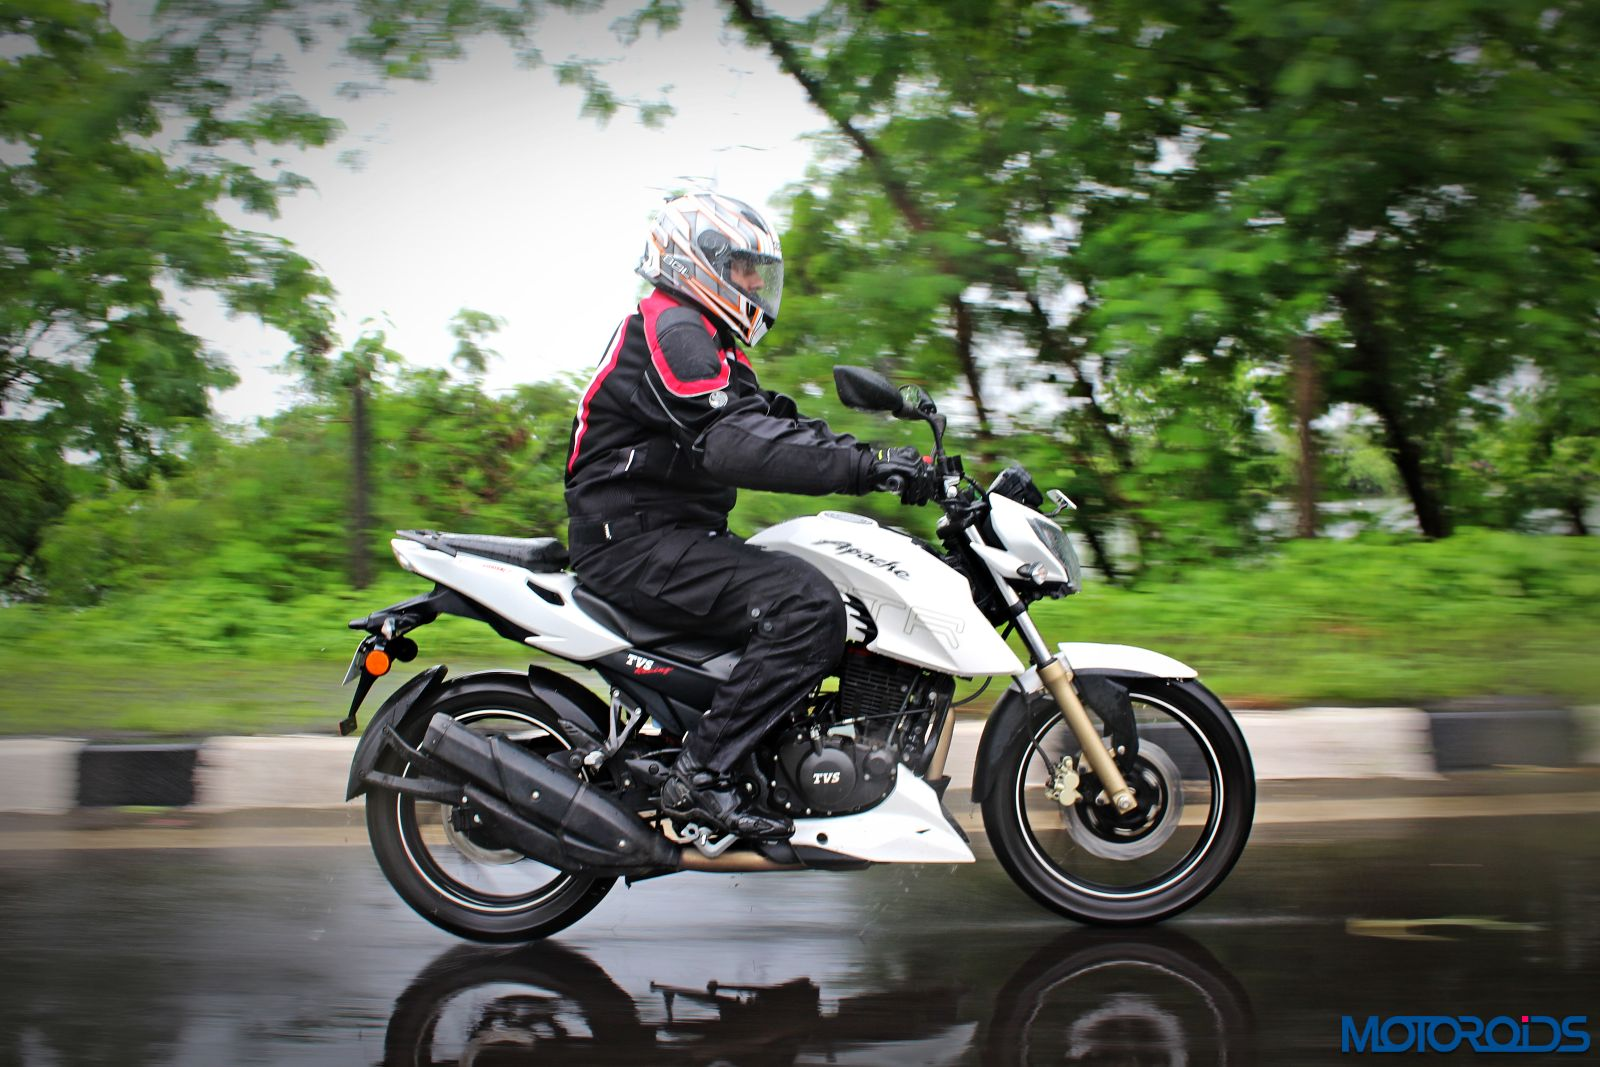 Tvs Apache Rtr 200 4v Long Term Review And Induction